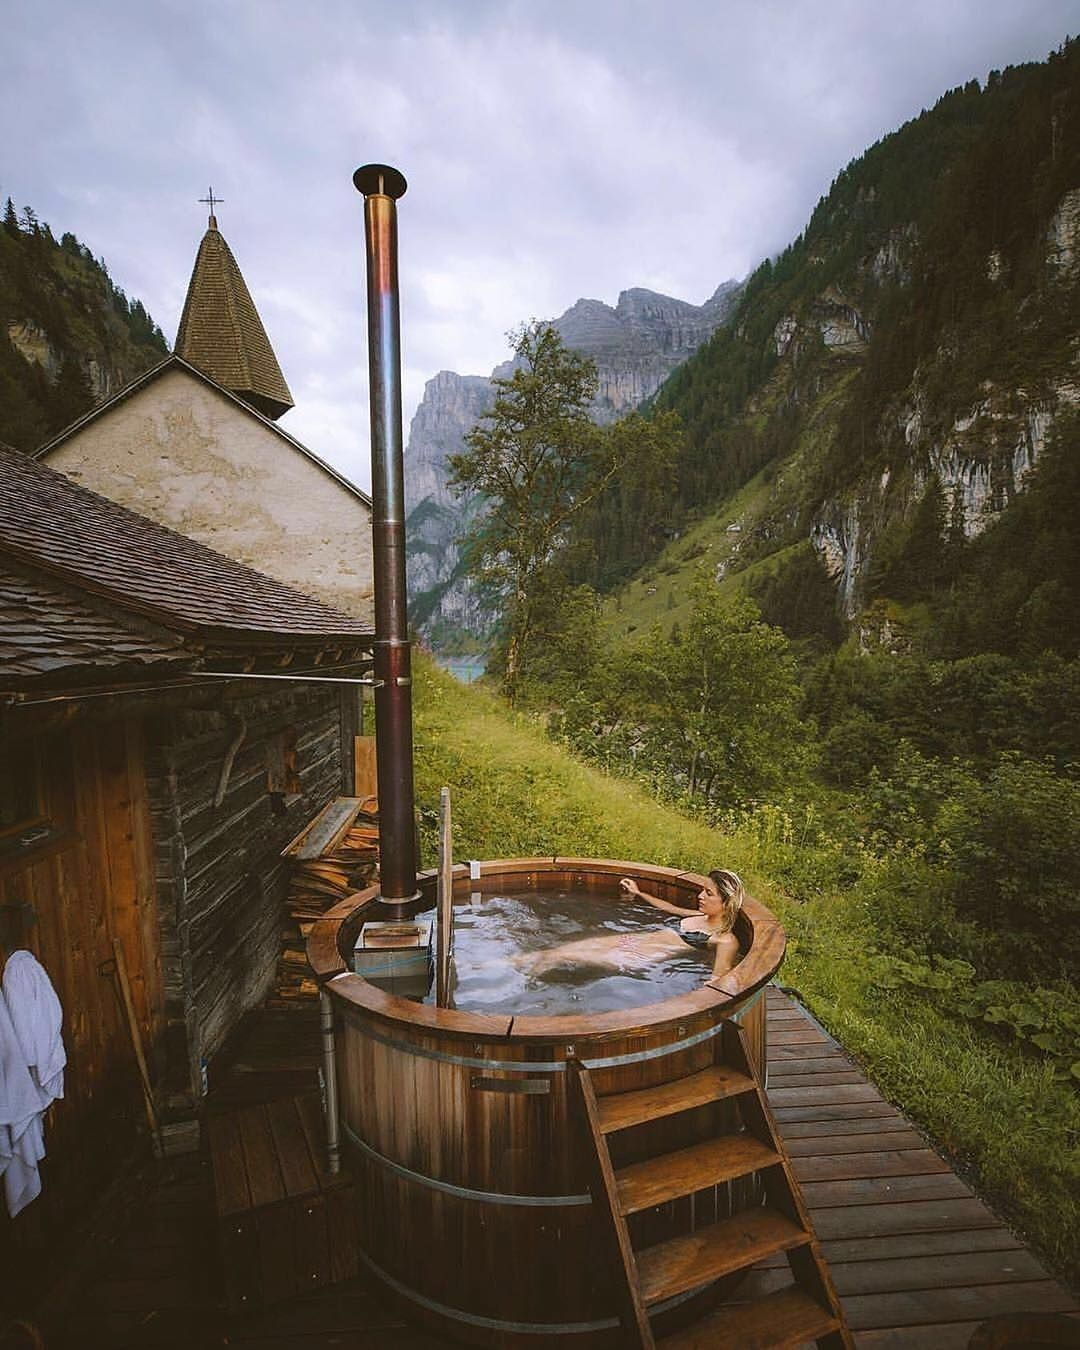 Home Outdoor S Life On Twitter In 2021 Outdoor Tub Ecological House Cabin Life